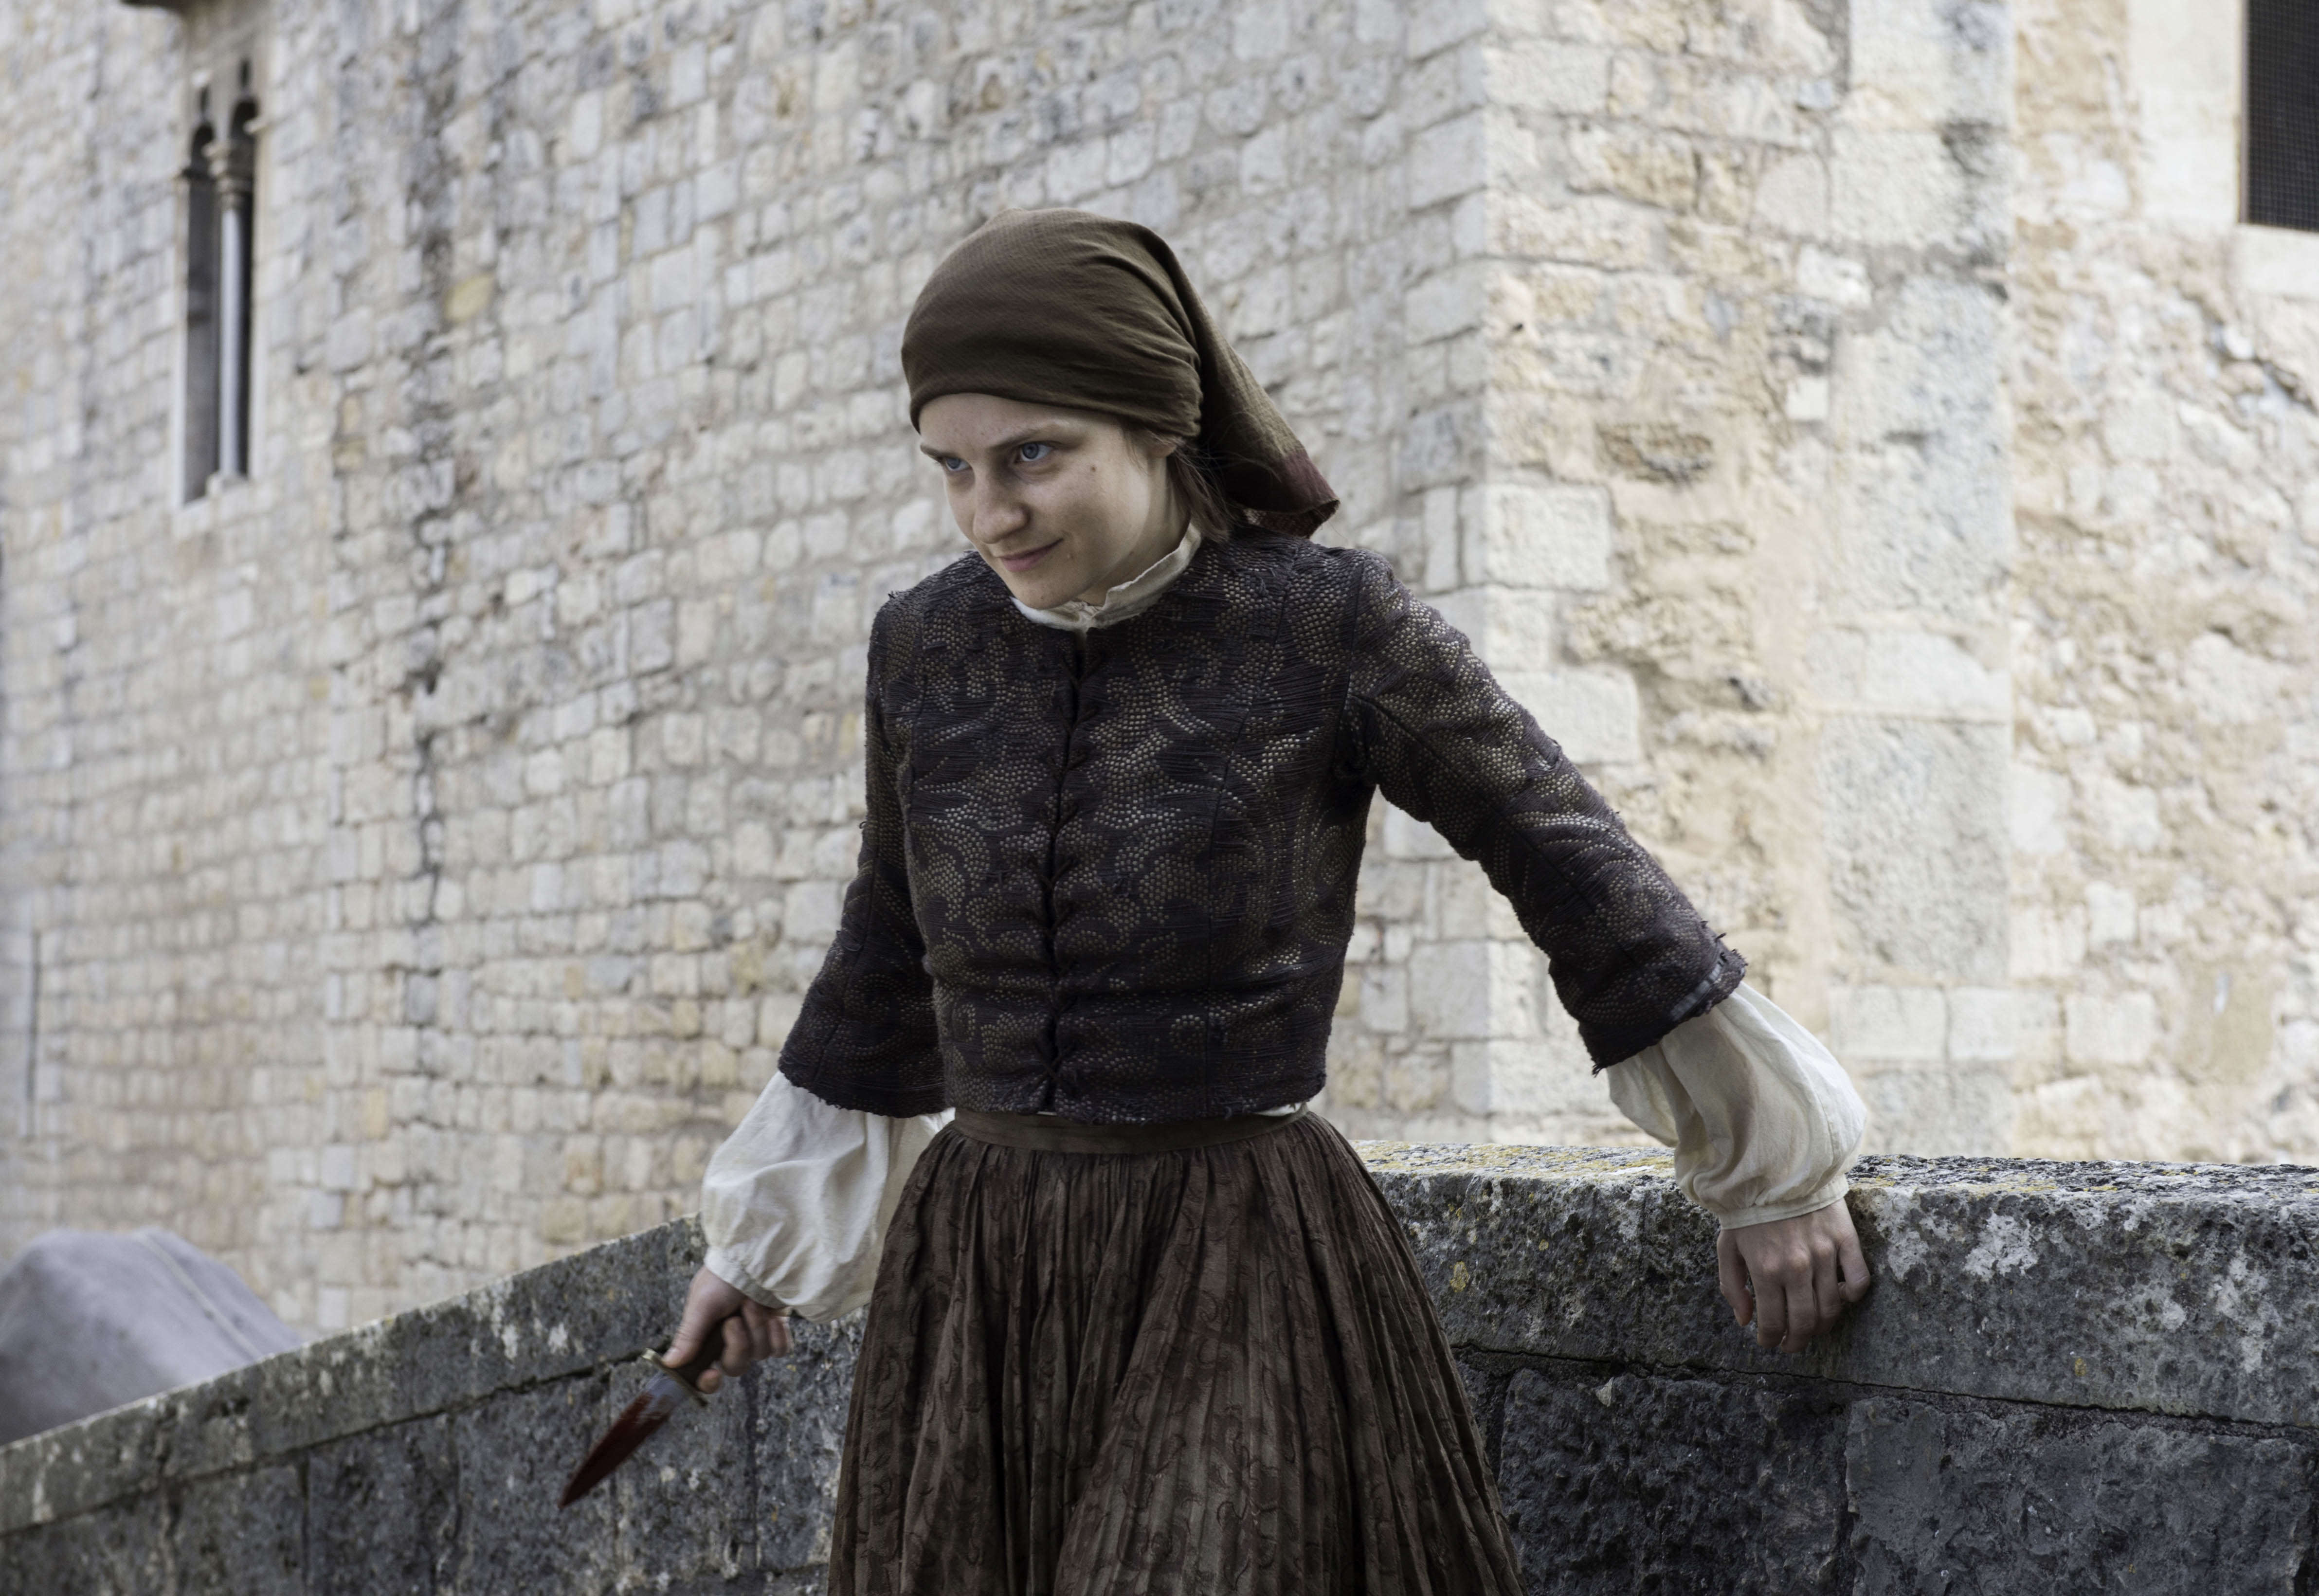 The Broken Man 25 Game Of Thrones The Waif Looks VERY Different In Real Life